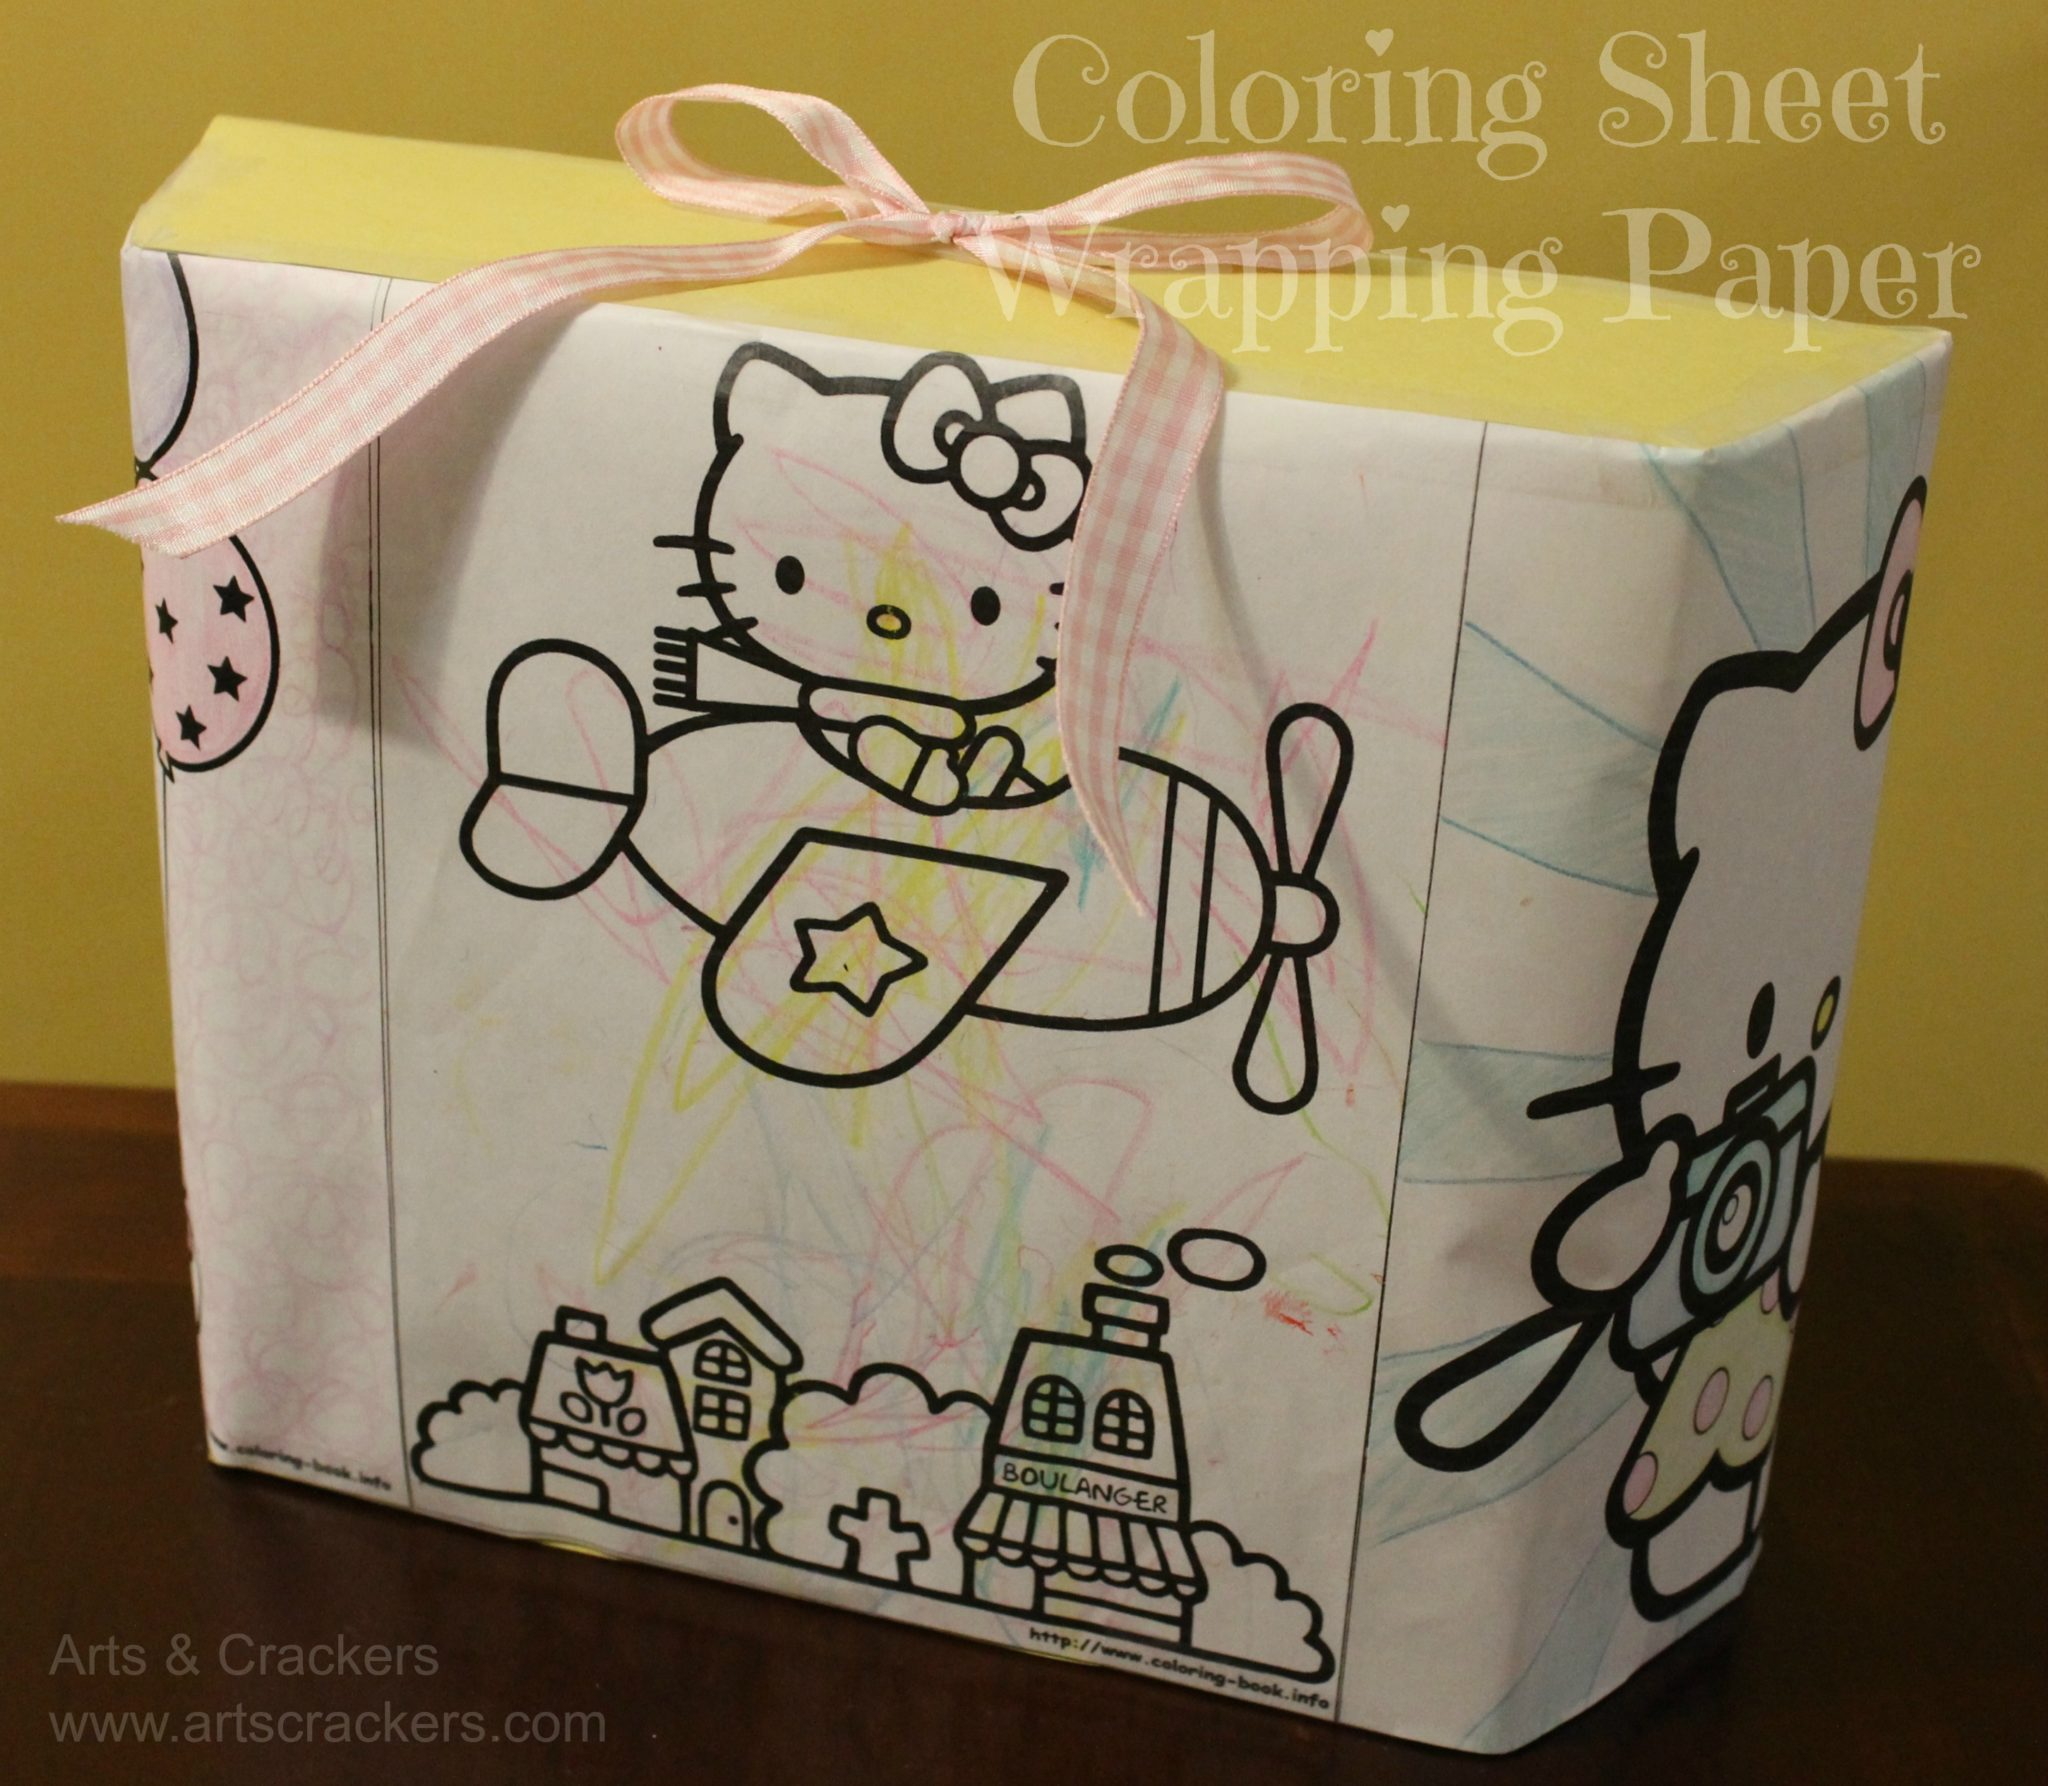 coloring sheet wrapping paper. Black Bedroom Furniture Sets. Home Design Ideas